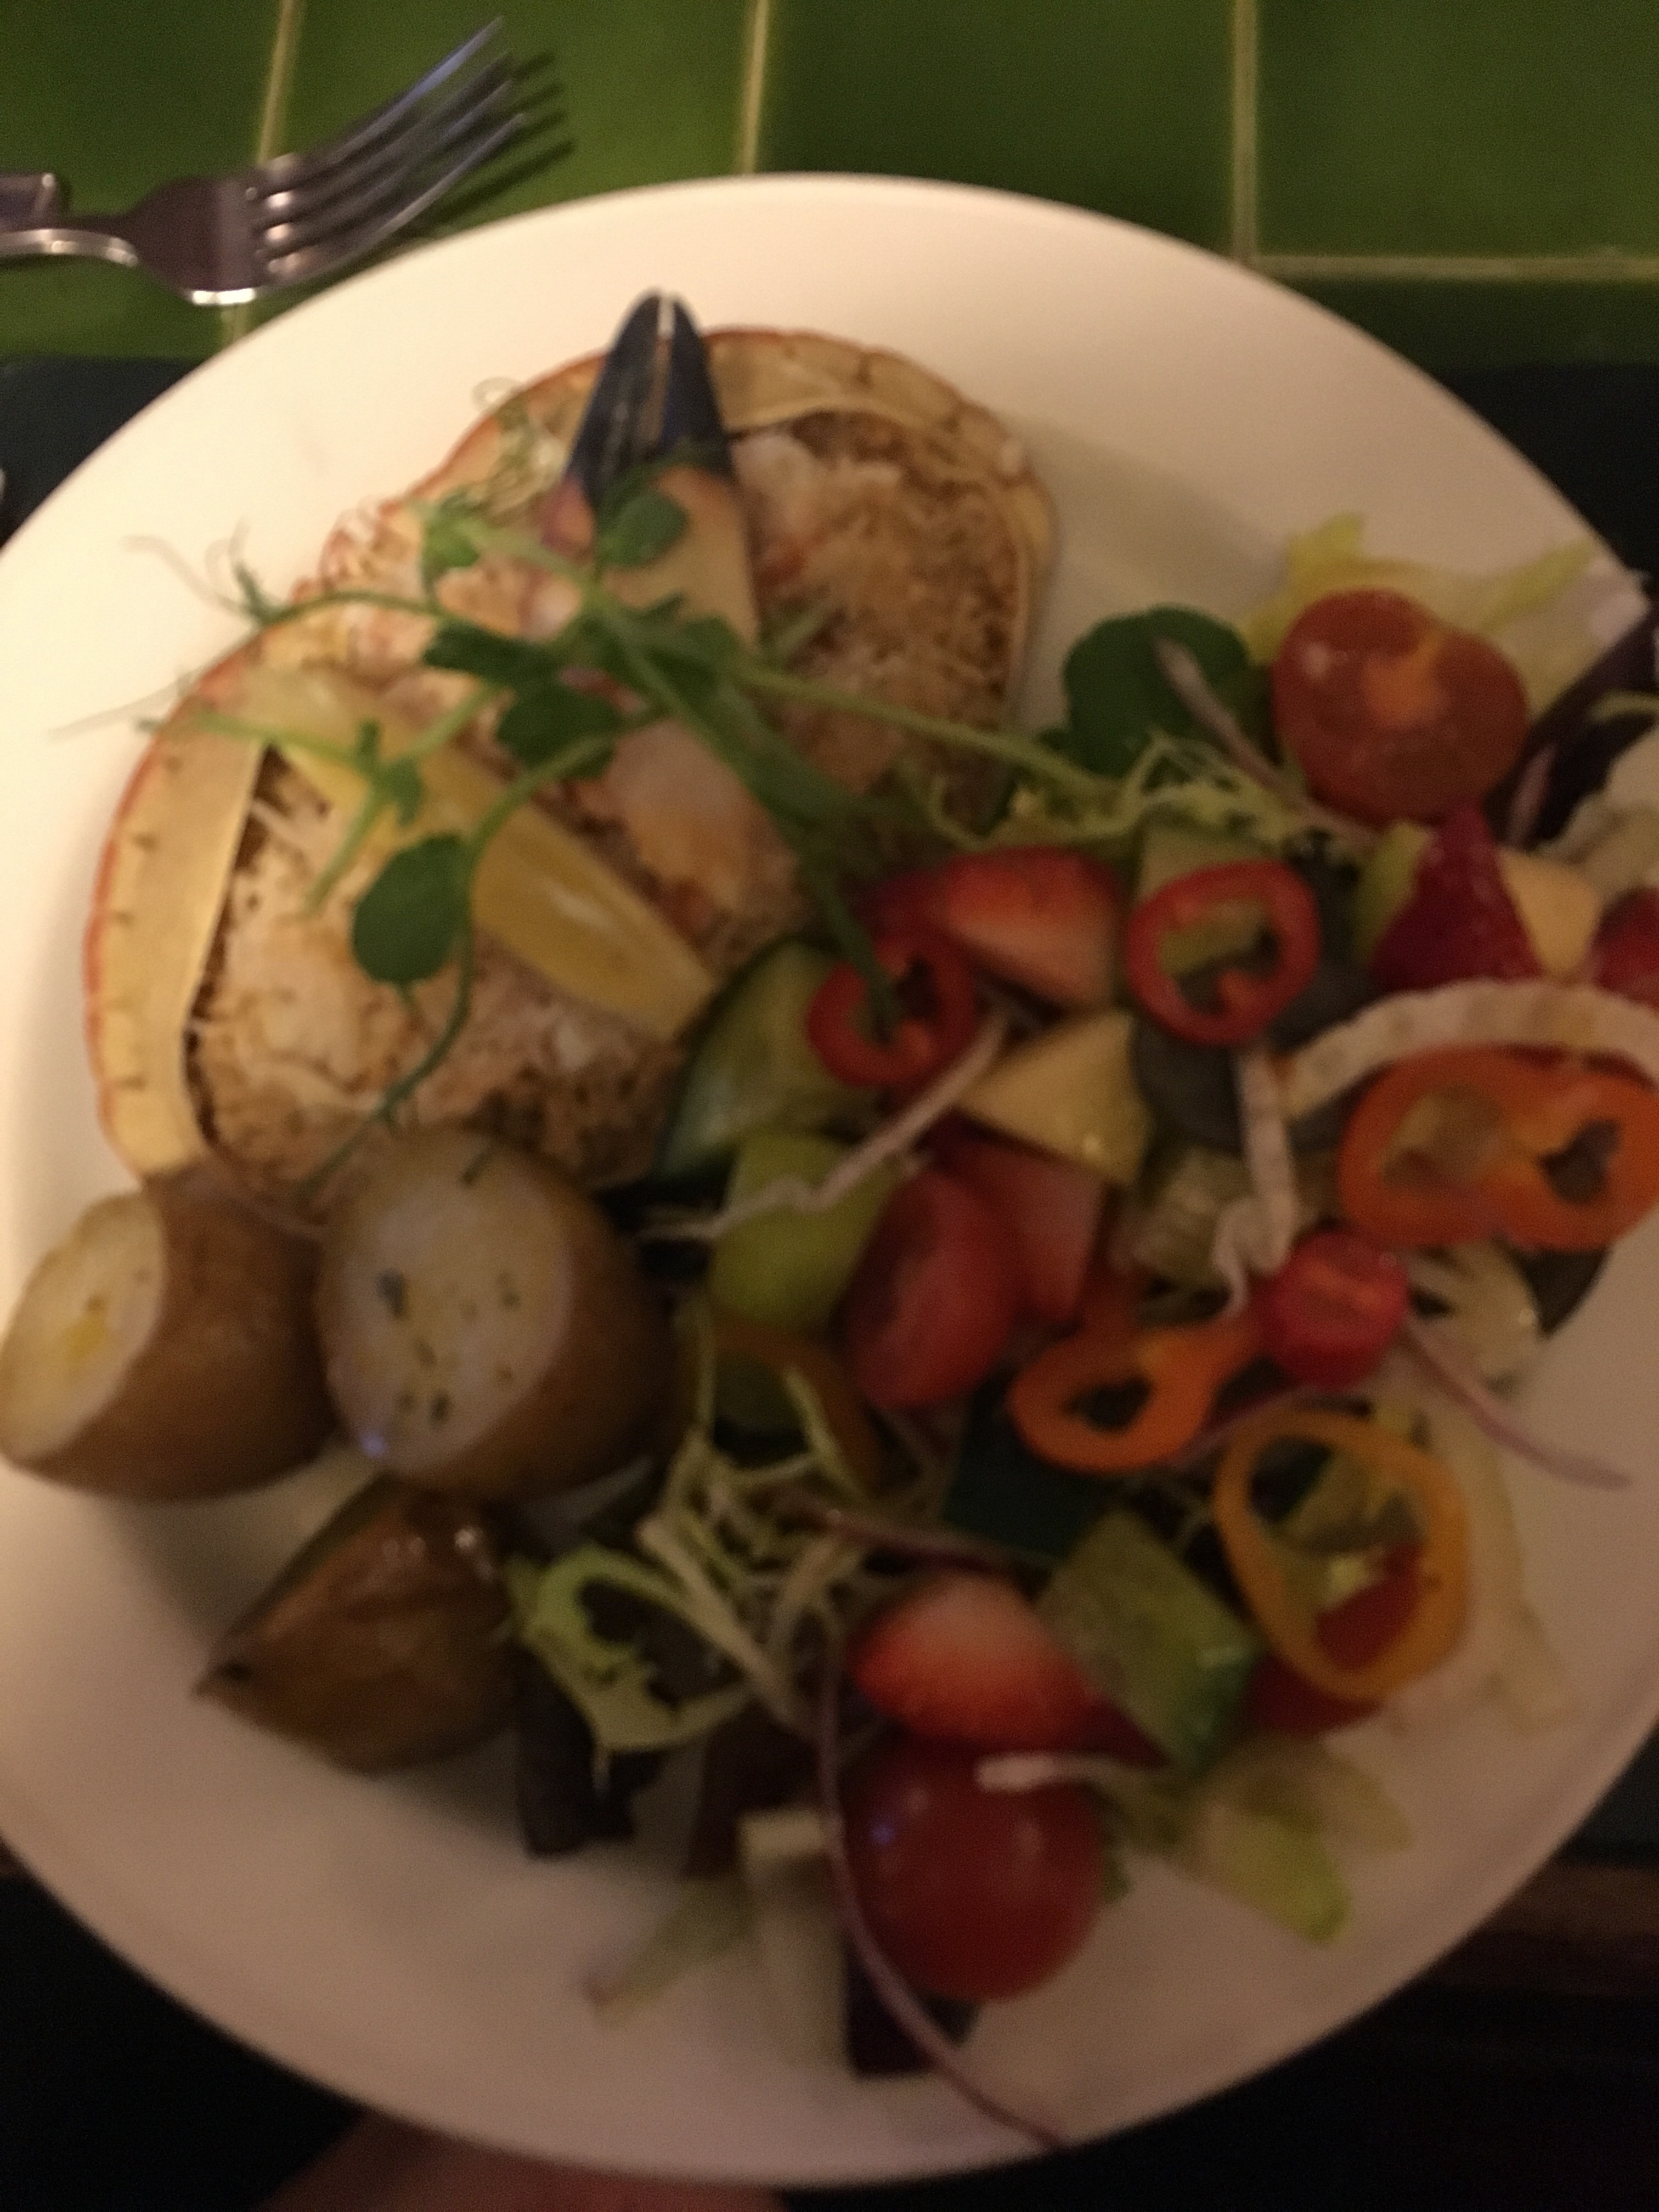 Northumberland crab with delicious salad